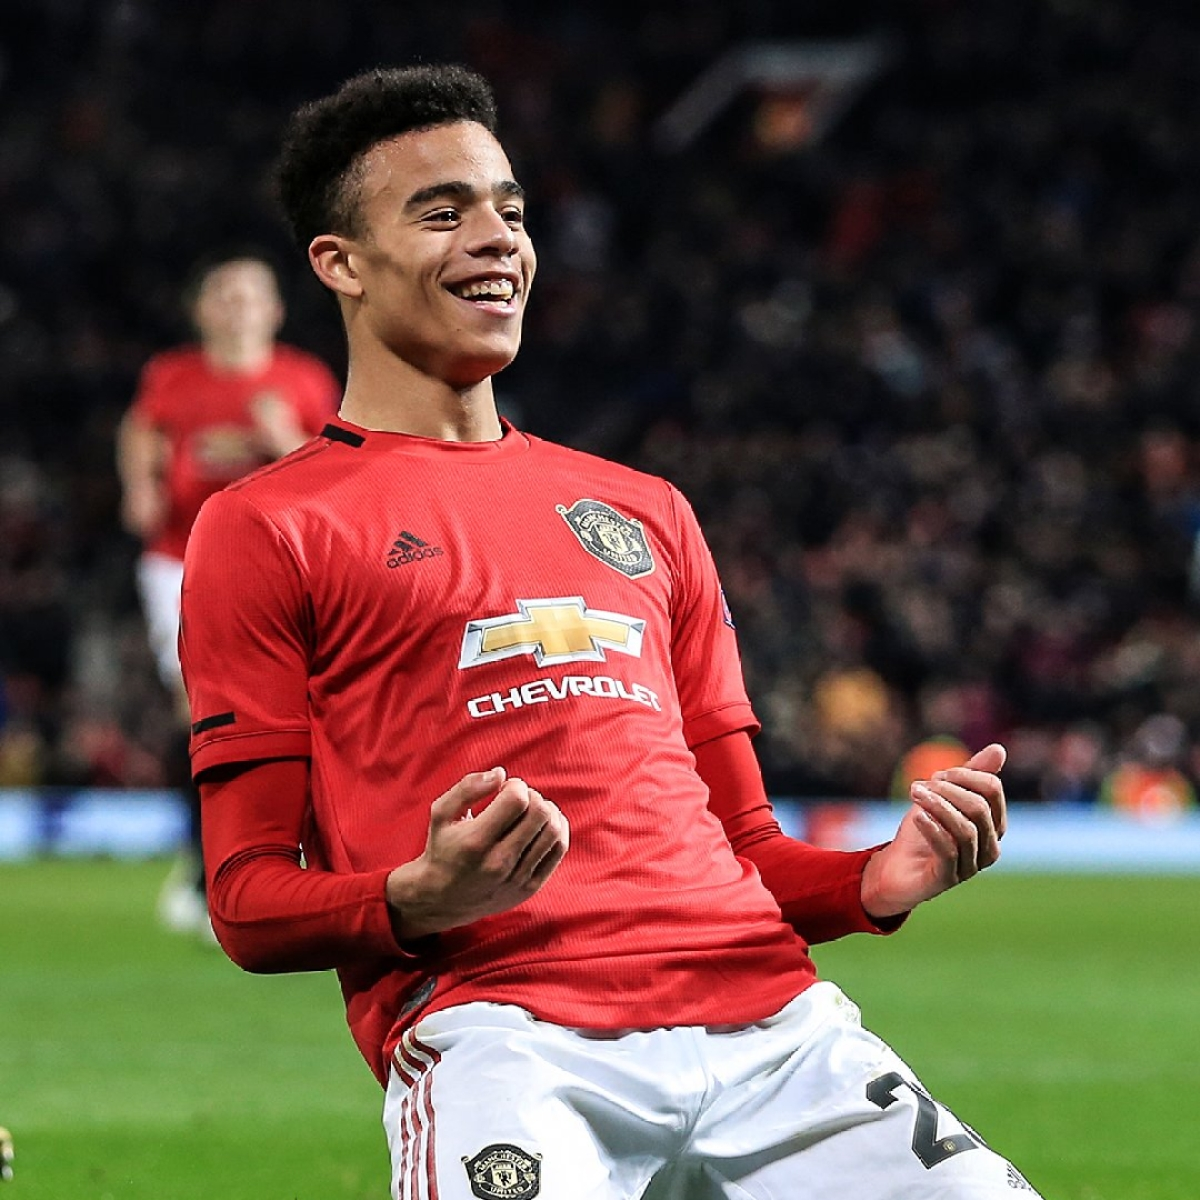 'Unfair to compare with Ronaldo and Rooney': Man Utd manager Ole Solskjaer after praising Mason Greenwood's finishing ability